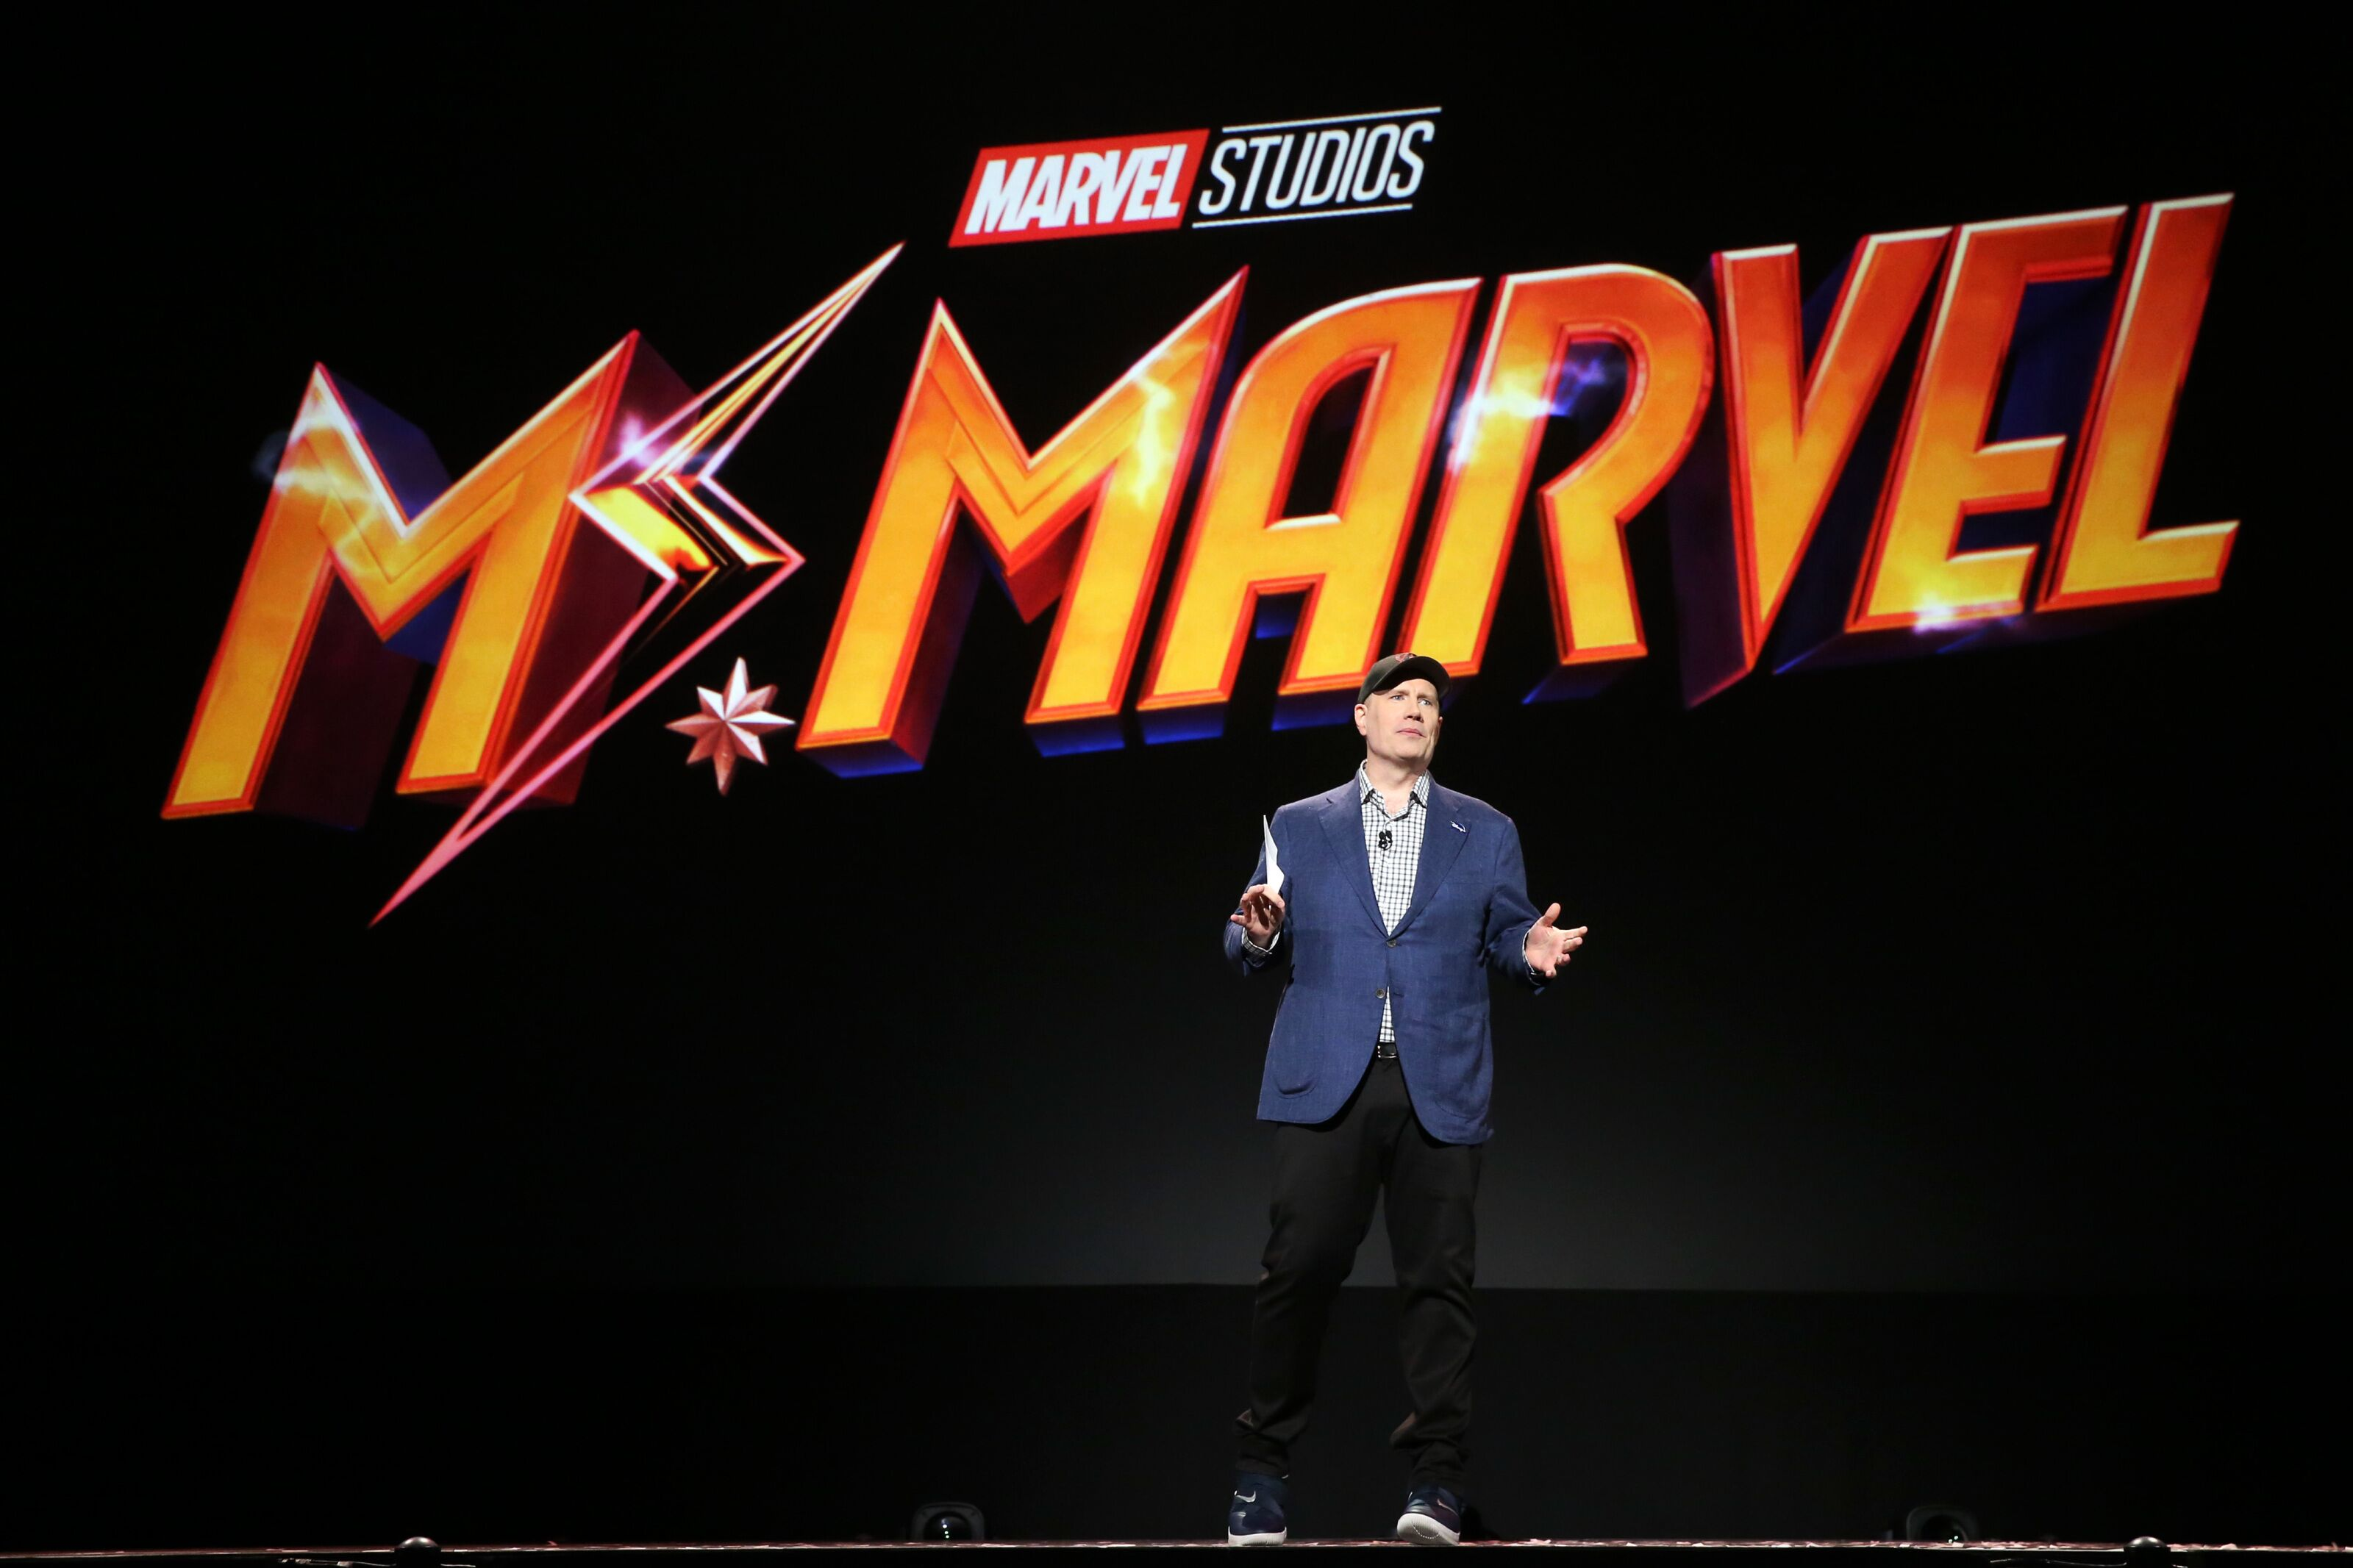 7 Marvel Superhero shows that are coming to Disney+ announced at D23